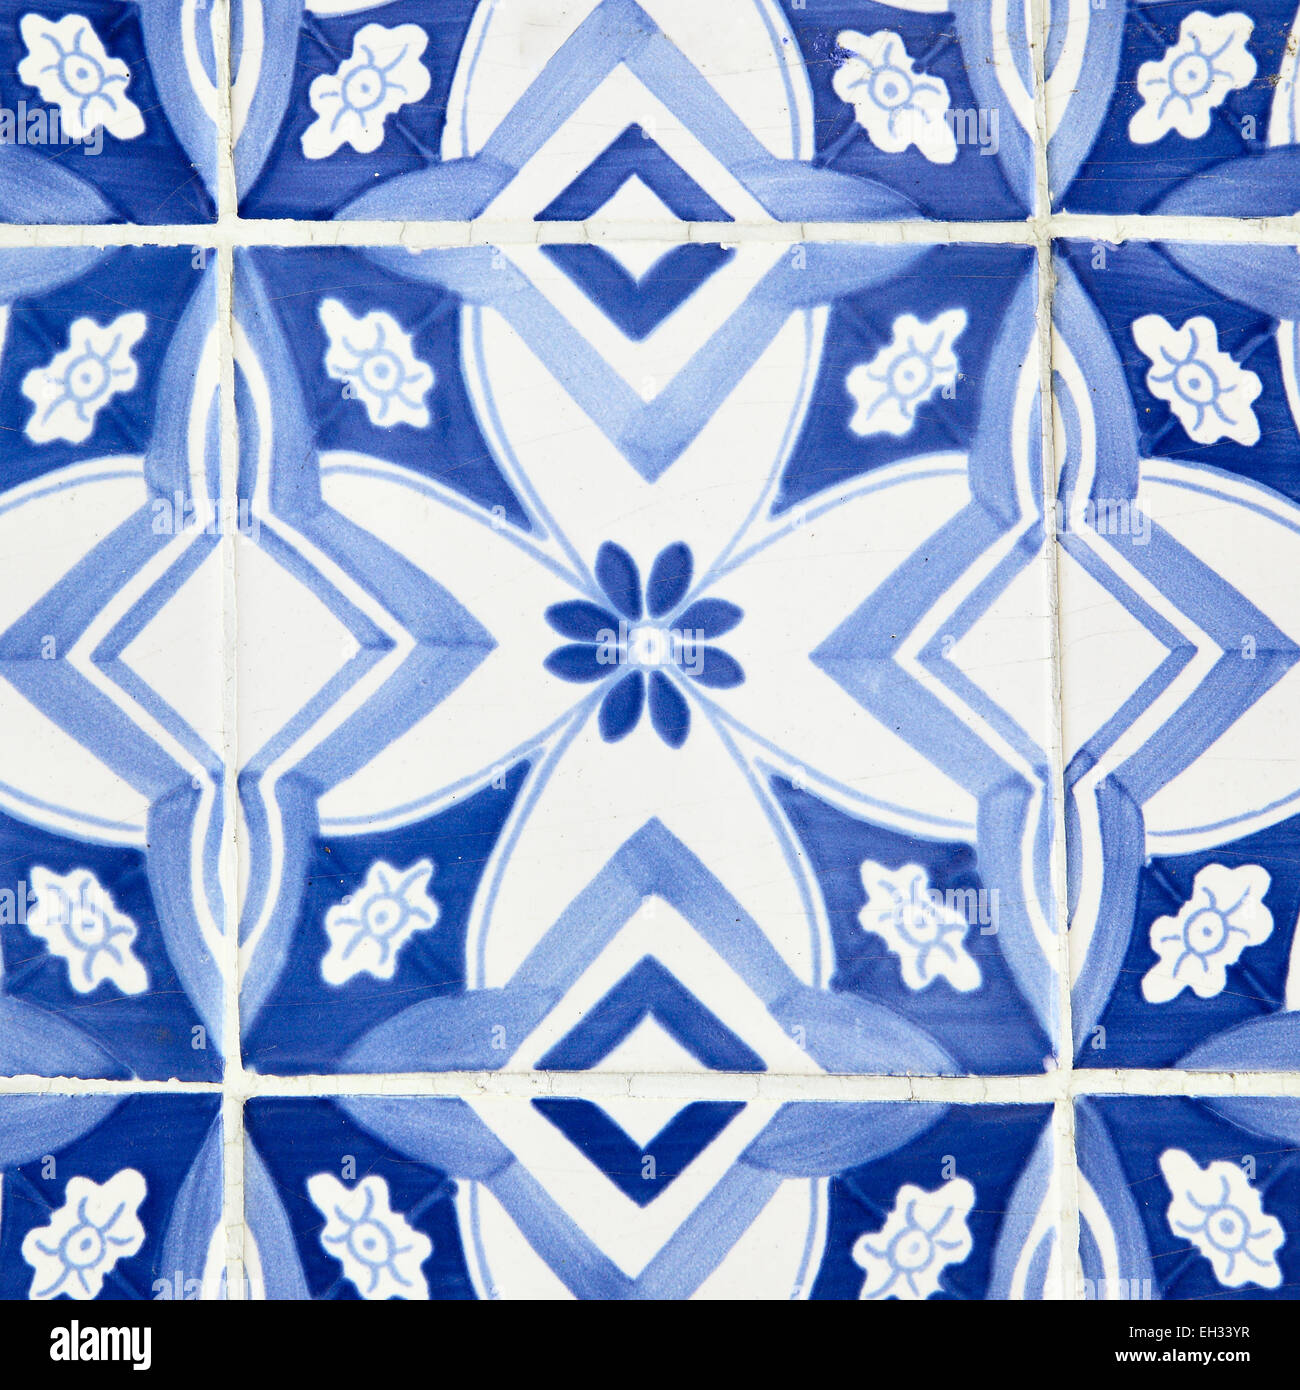 Traditional tiles (azulejos) in Lisbon, Portugal - Stock Image